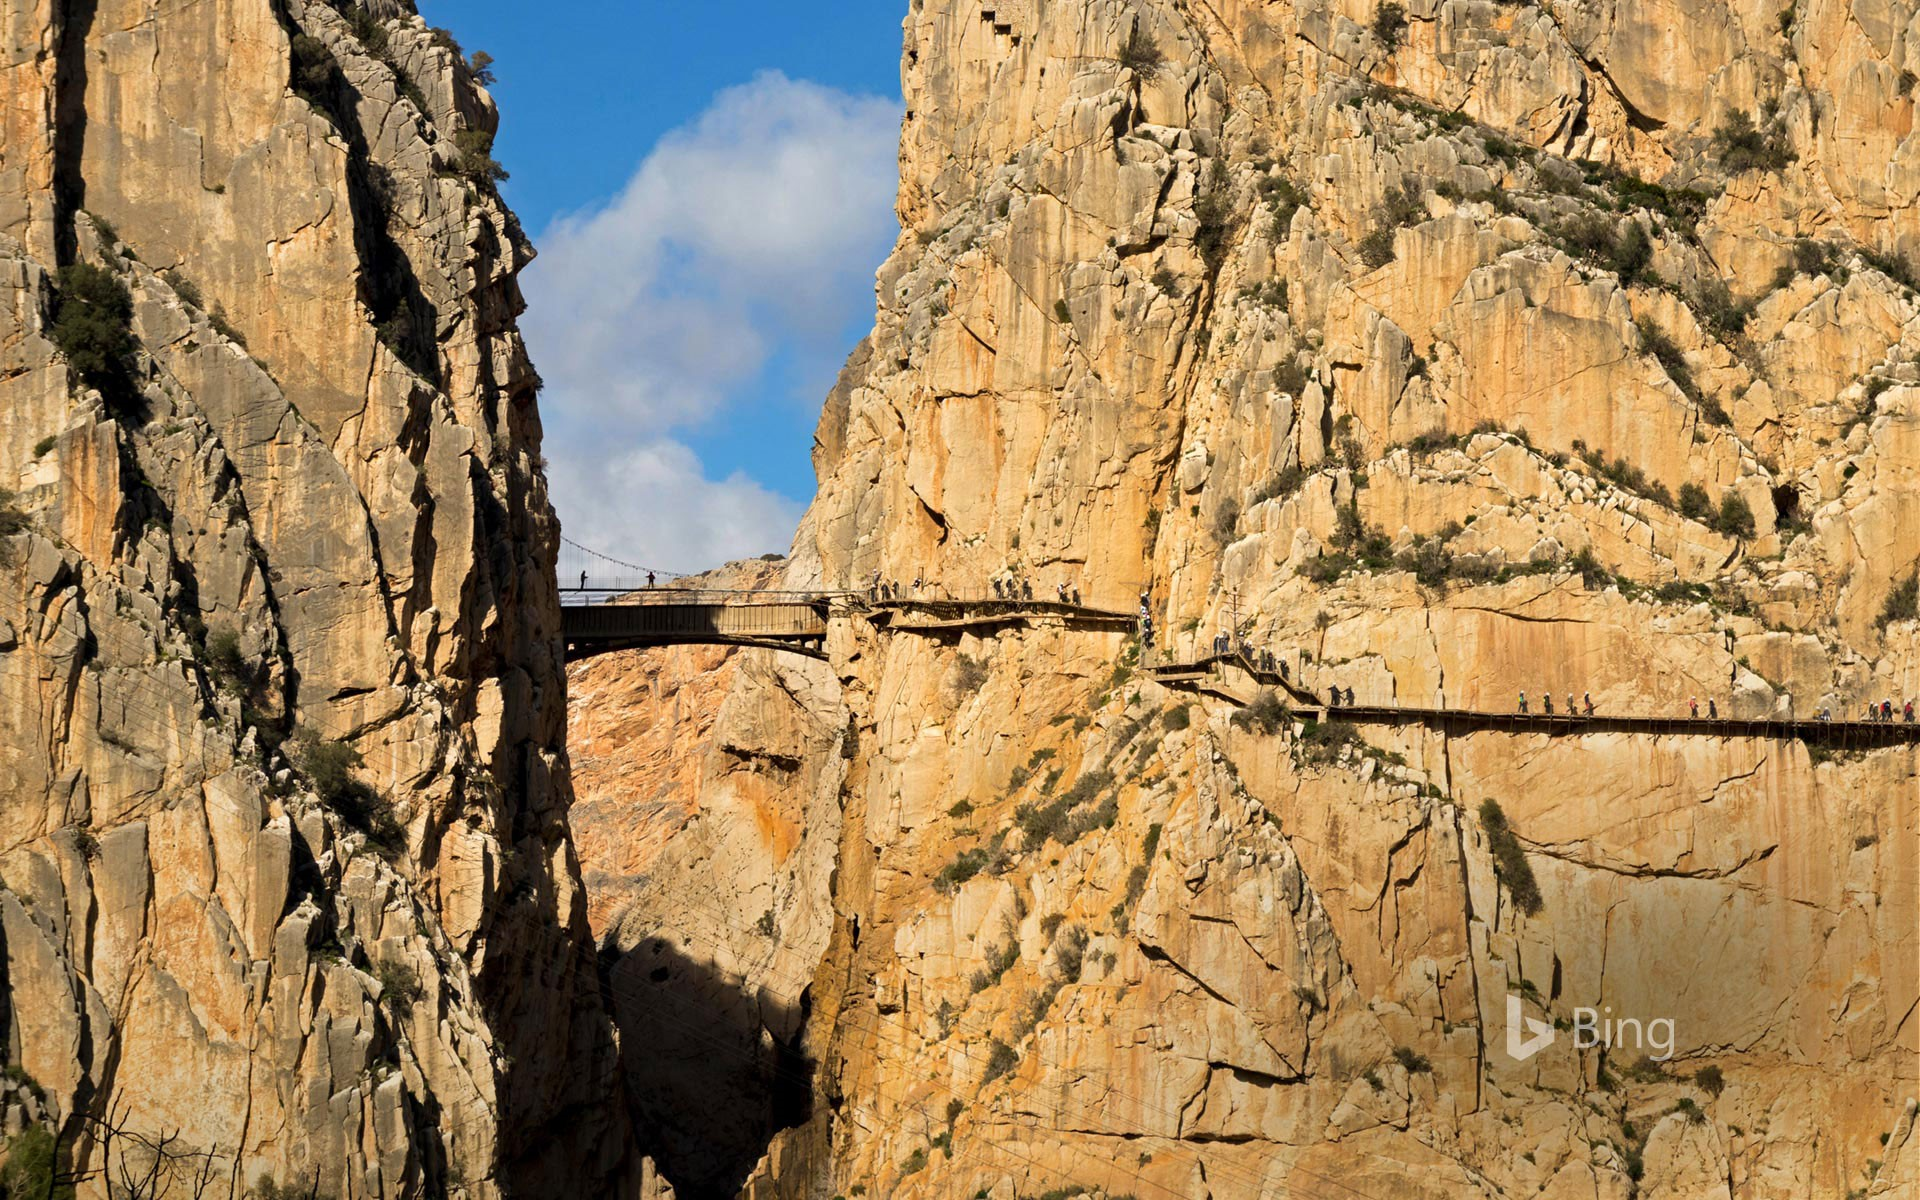 Visitors on El Caminito del Rey in the province of Málaga, Spain